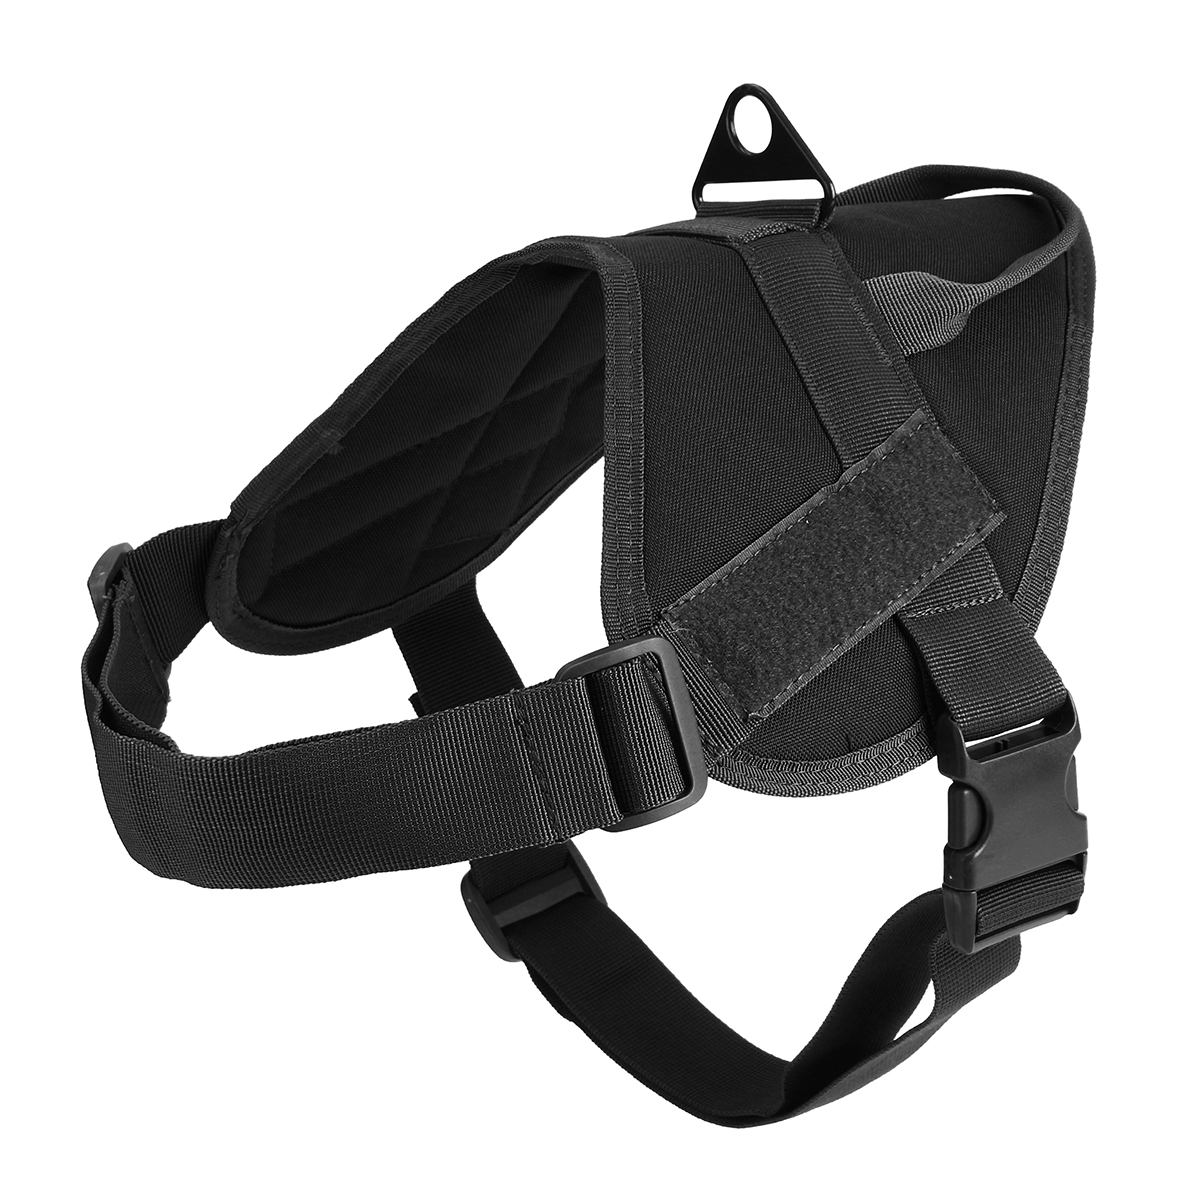 L Size 1000D Nylon Dog Vest Harness Outdoor Canine Training Tactical K9 Service Molle Jacket with Handle